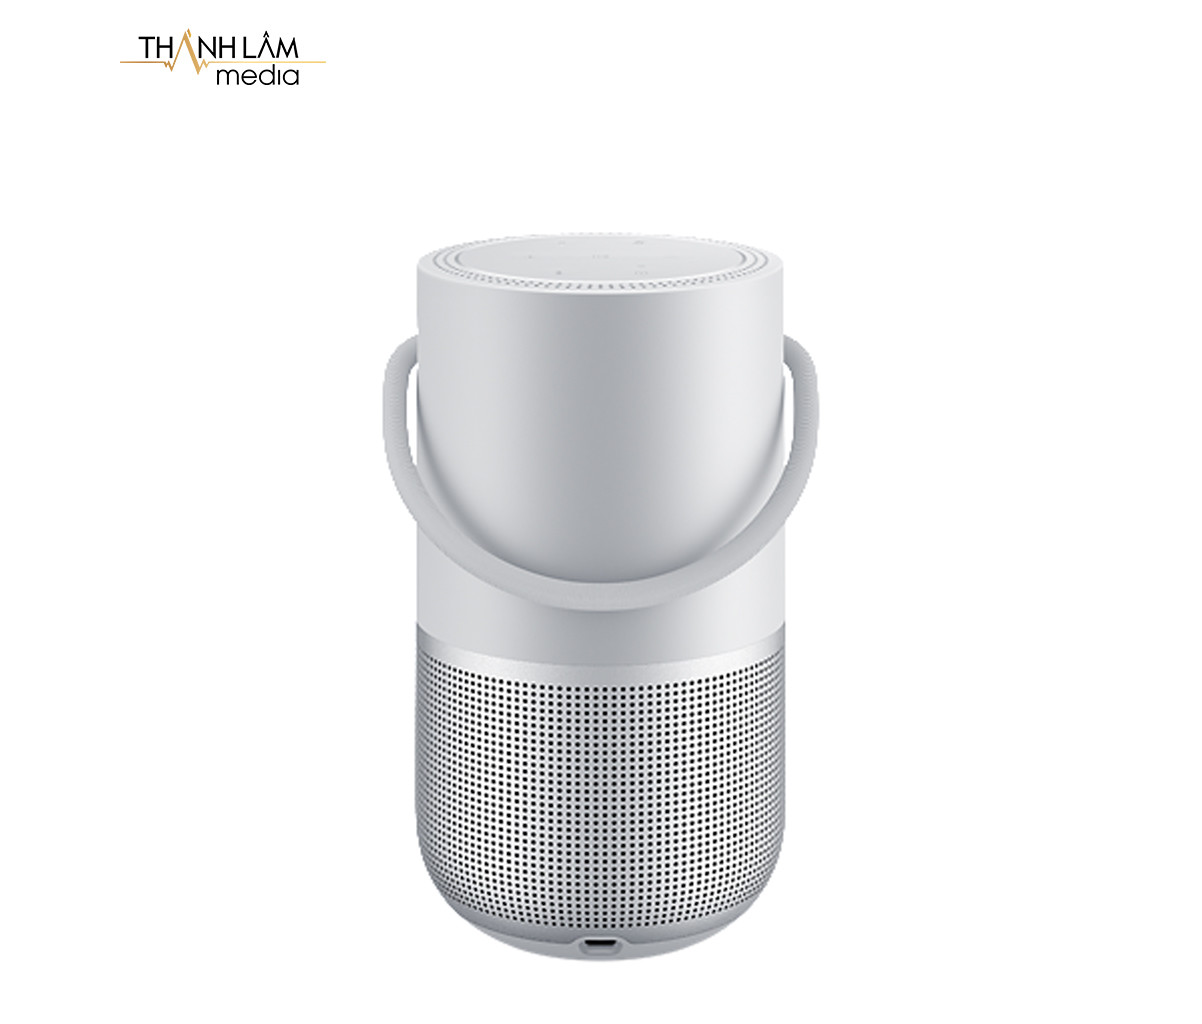 Loa Bose Portable Home Speaker Trang 1